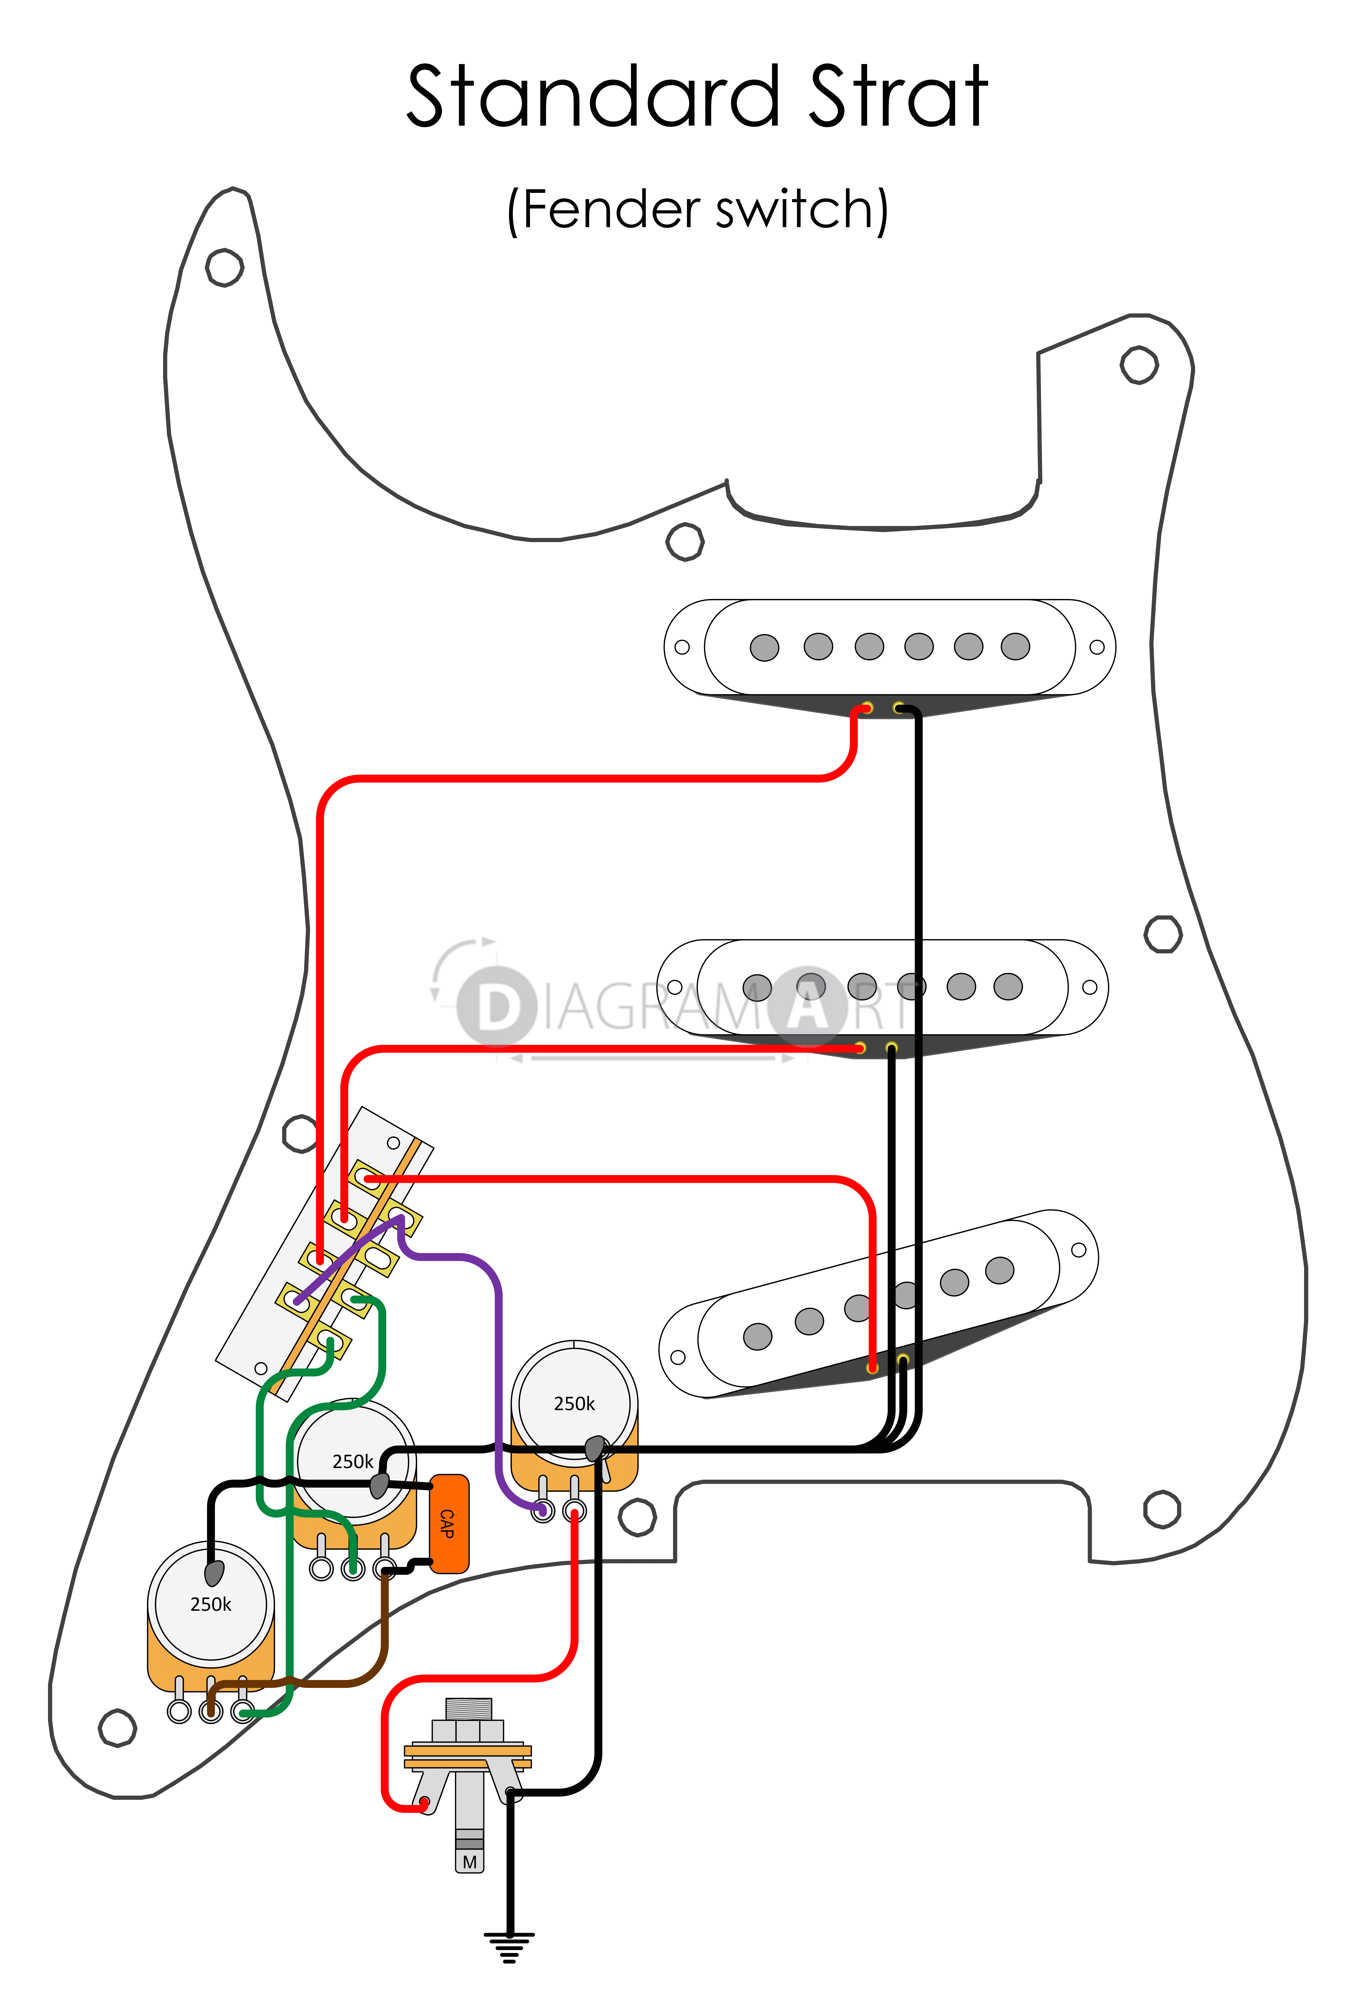 Wiring Diagrams for Guitars 30 Wiring Diagram for Electric Guitar Ideen Gitarrenbau Gitarre